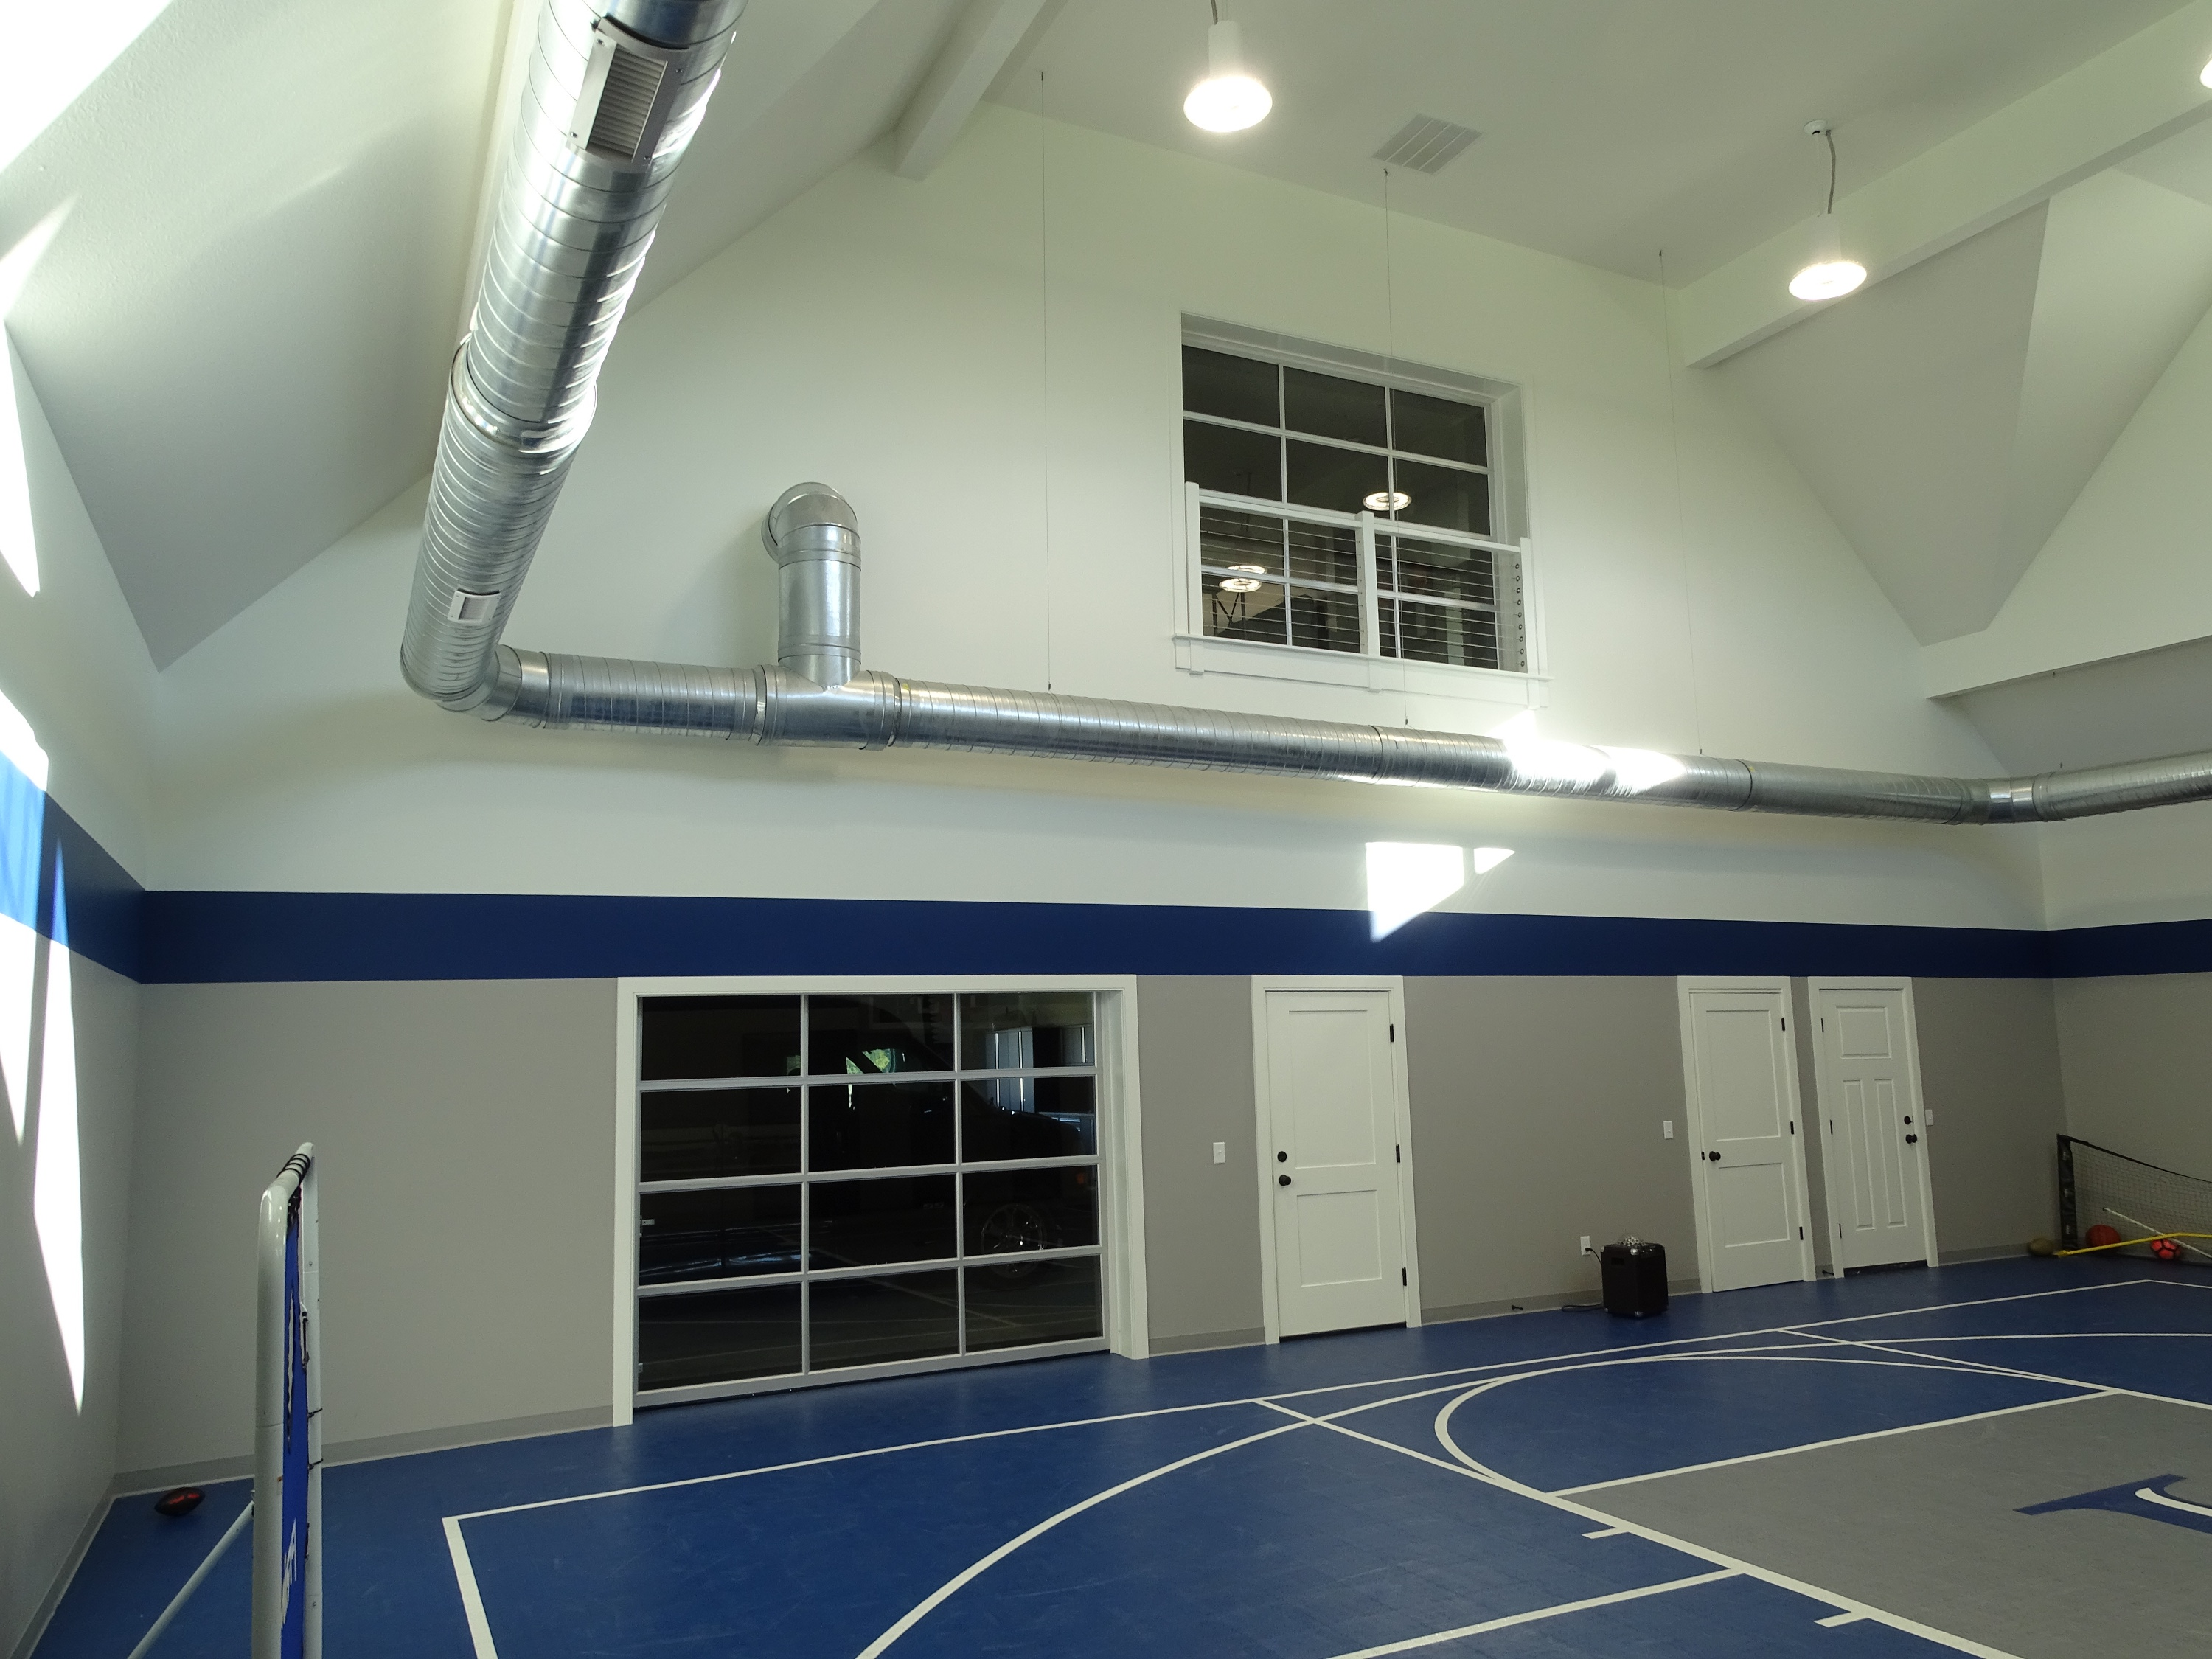 Interior view of recreation building